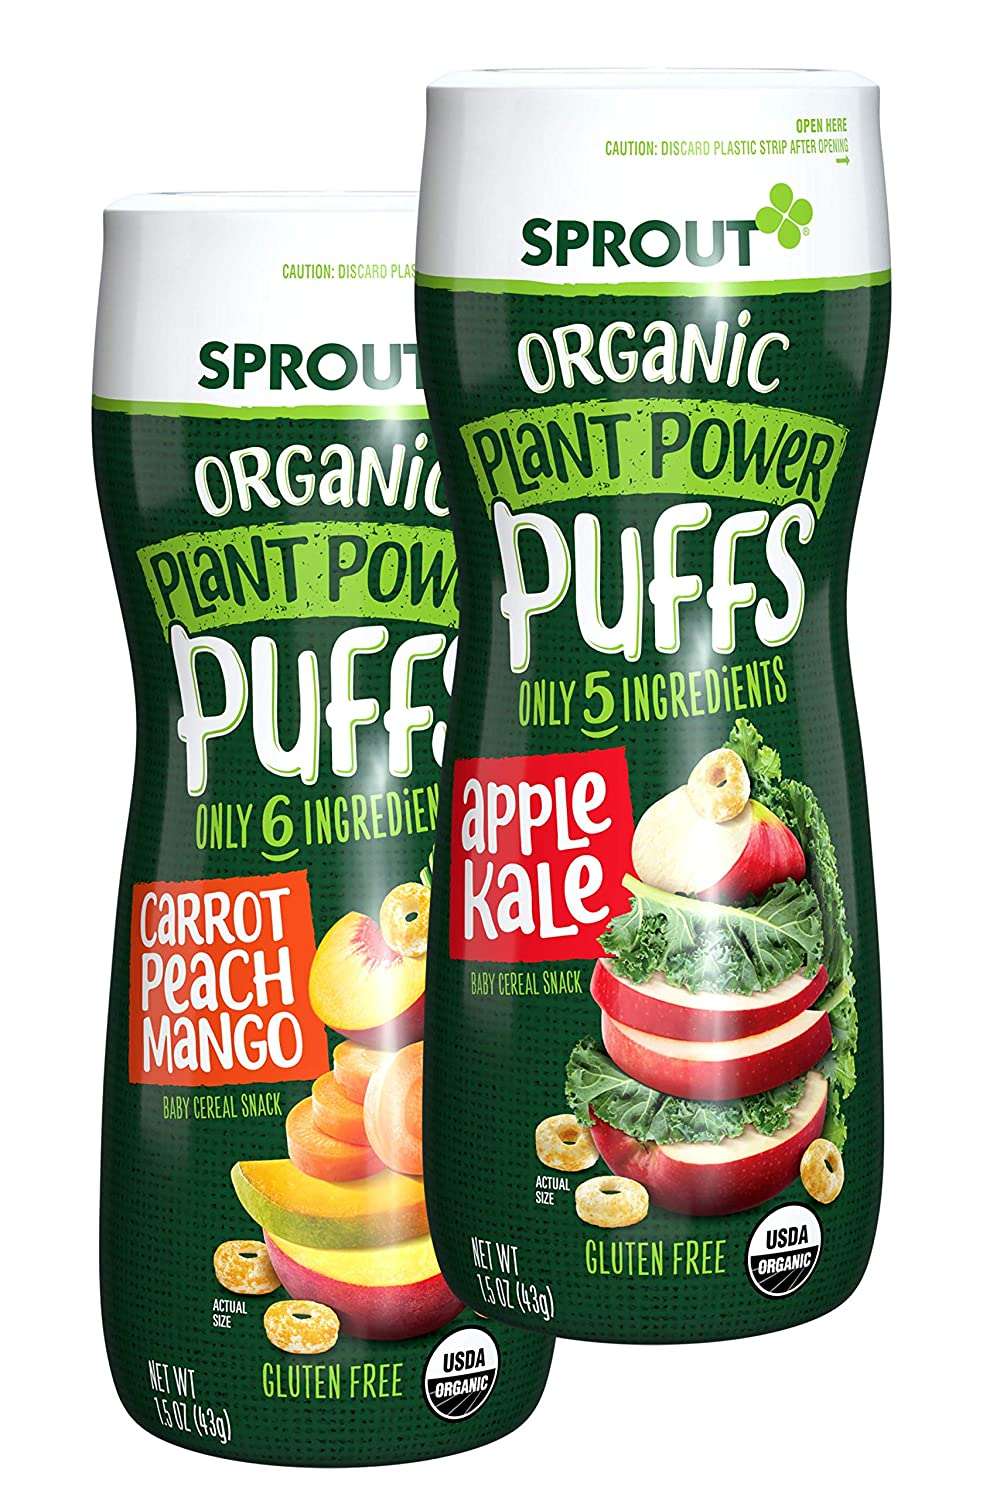 Sprout Organic Plant Power Puffs Baby Snacks, Variety Pack, 1.5 Ounce Canister (Pack of 6) 3 of Each: Carrot Mango & Apple Kale (Packaging May Vary)